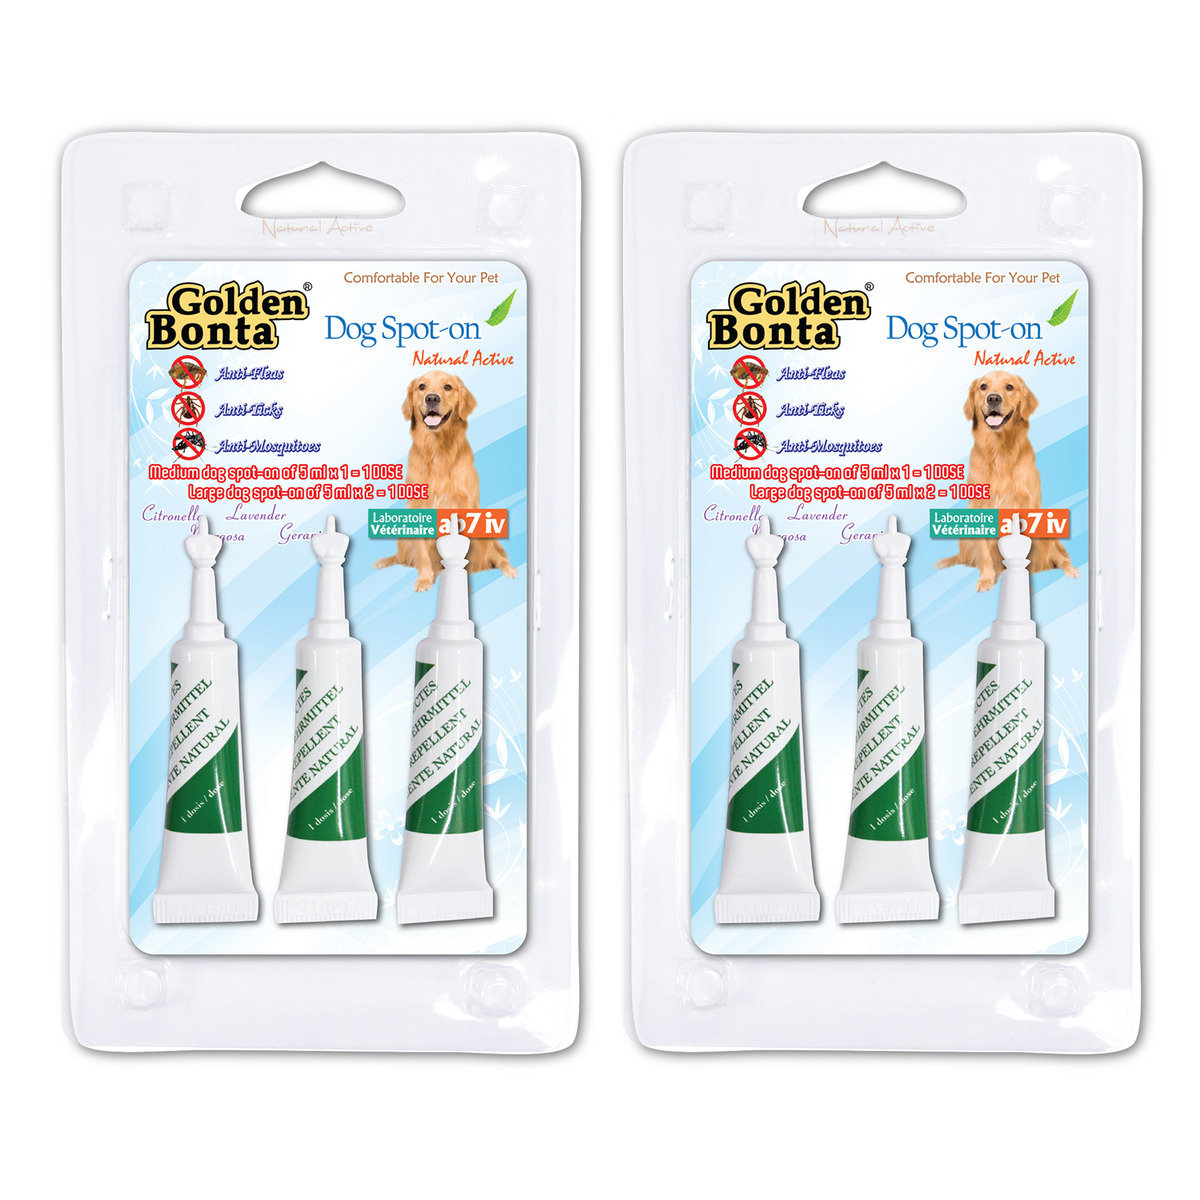 Repellent drop for Large dogs x 2 (GBR-13-2)